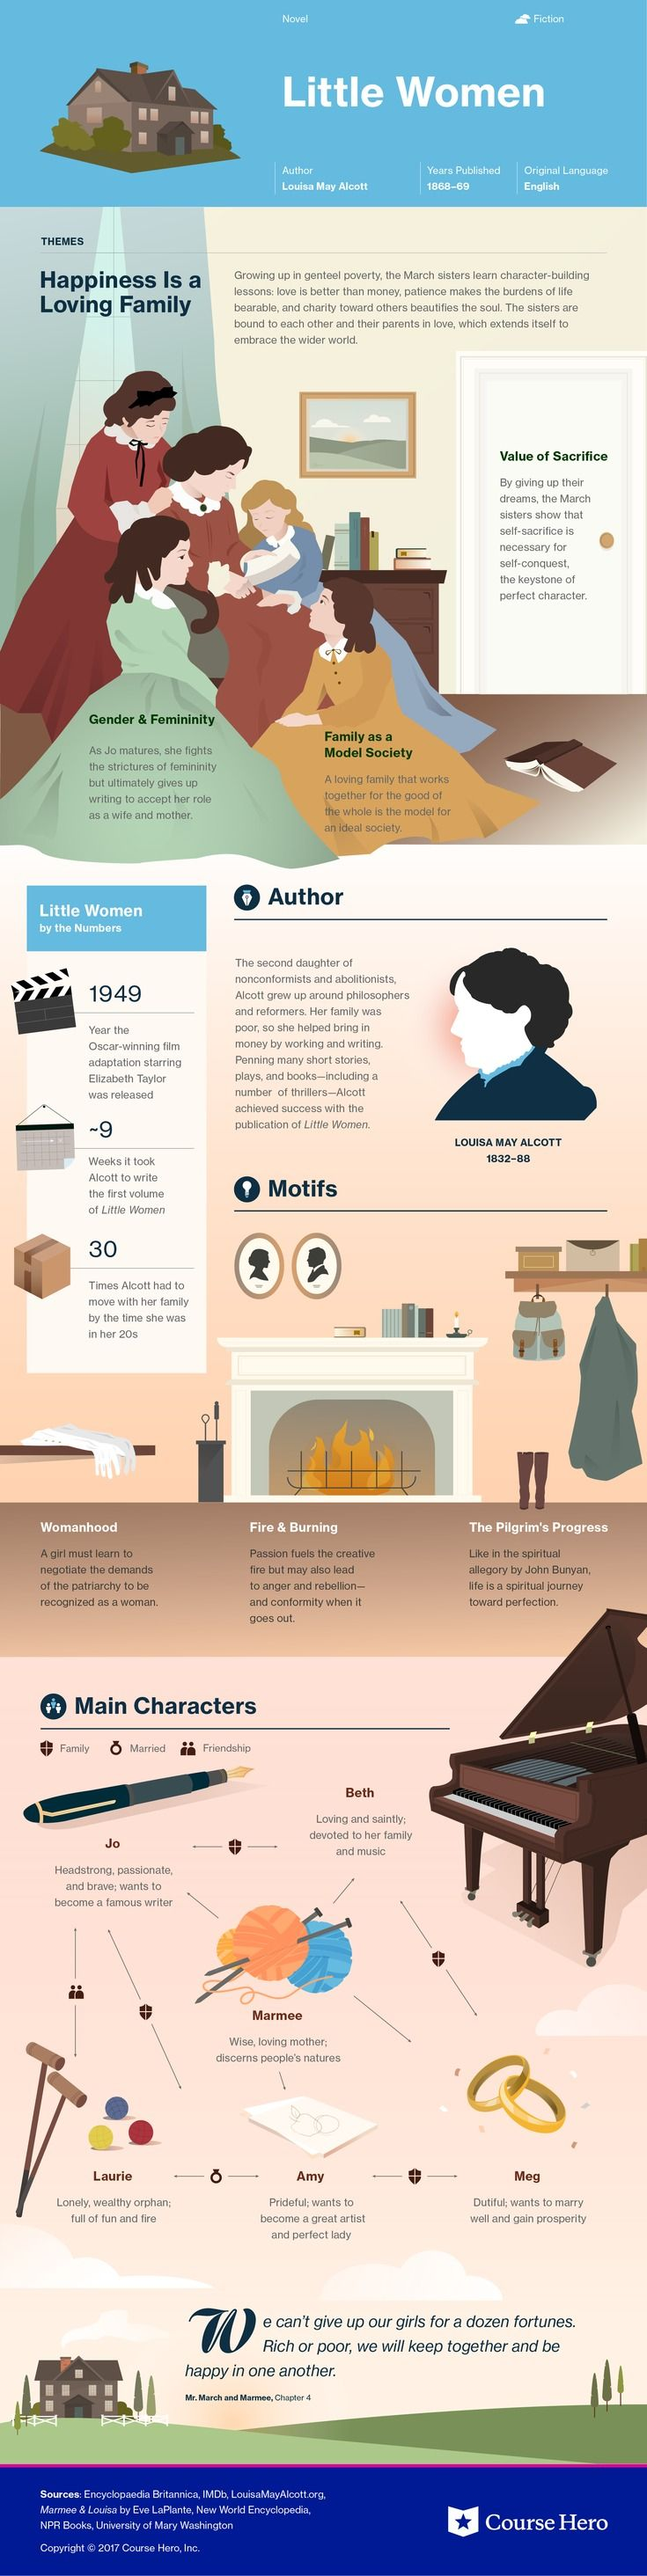 This @CourseHero infographic on Little Women is both visually stunning and informative!